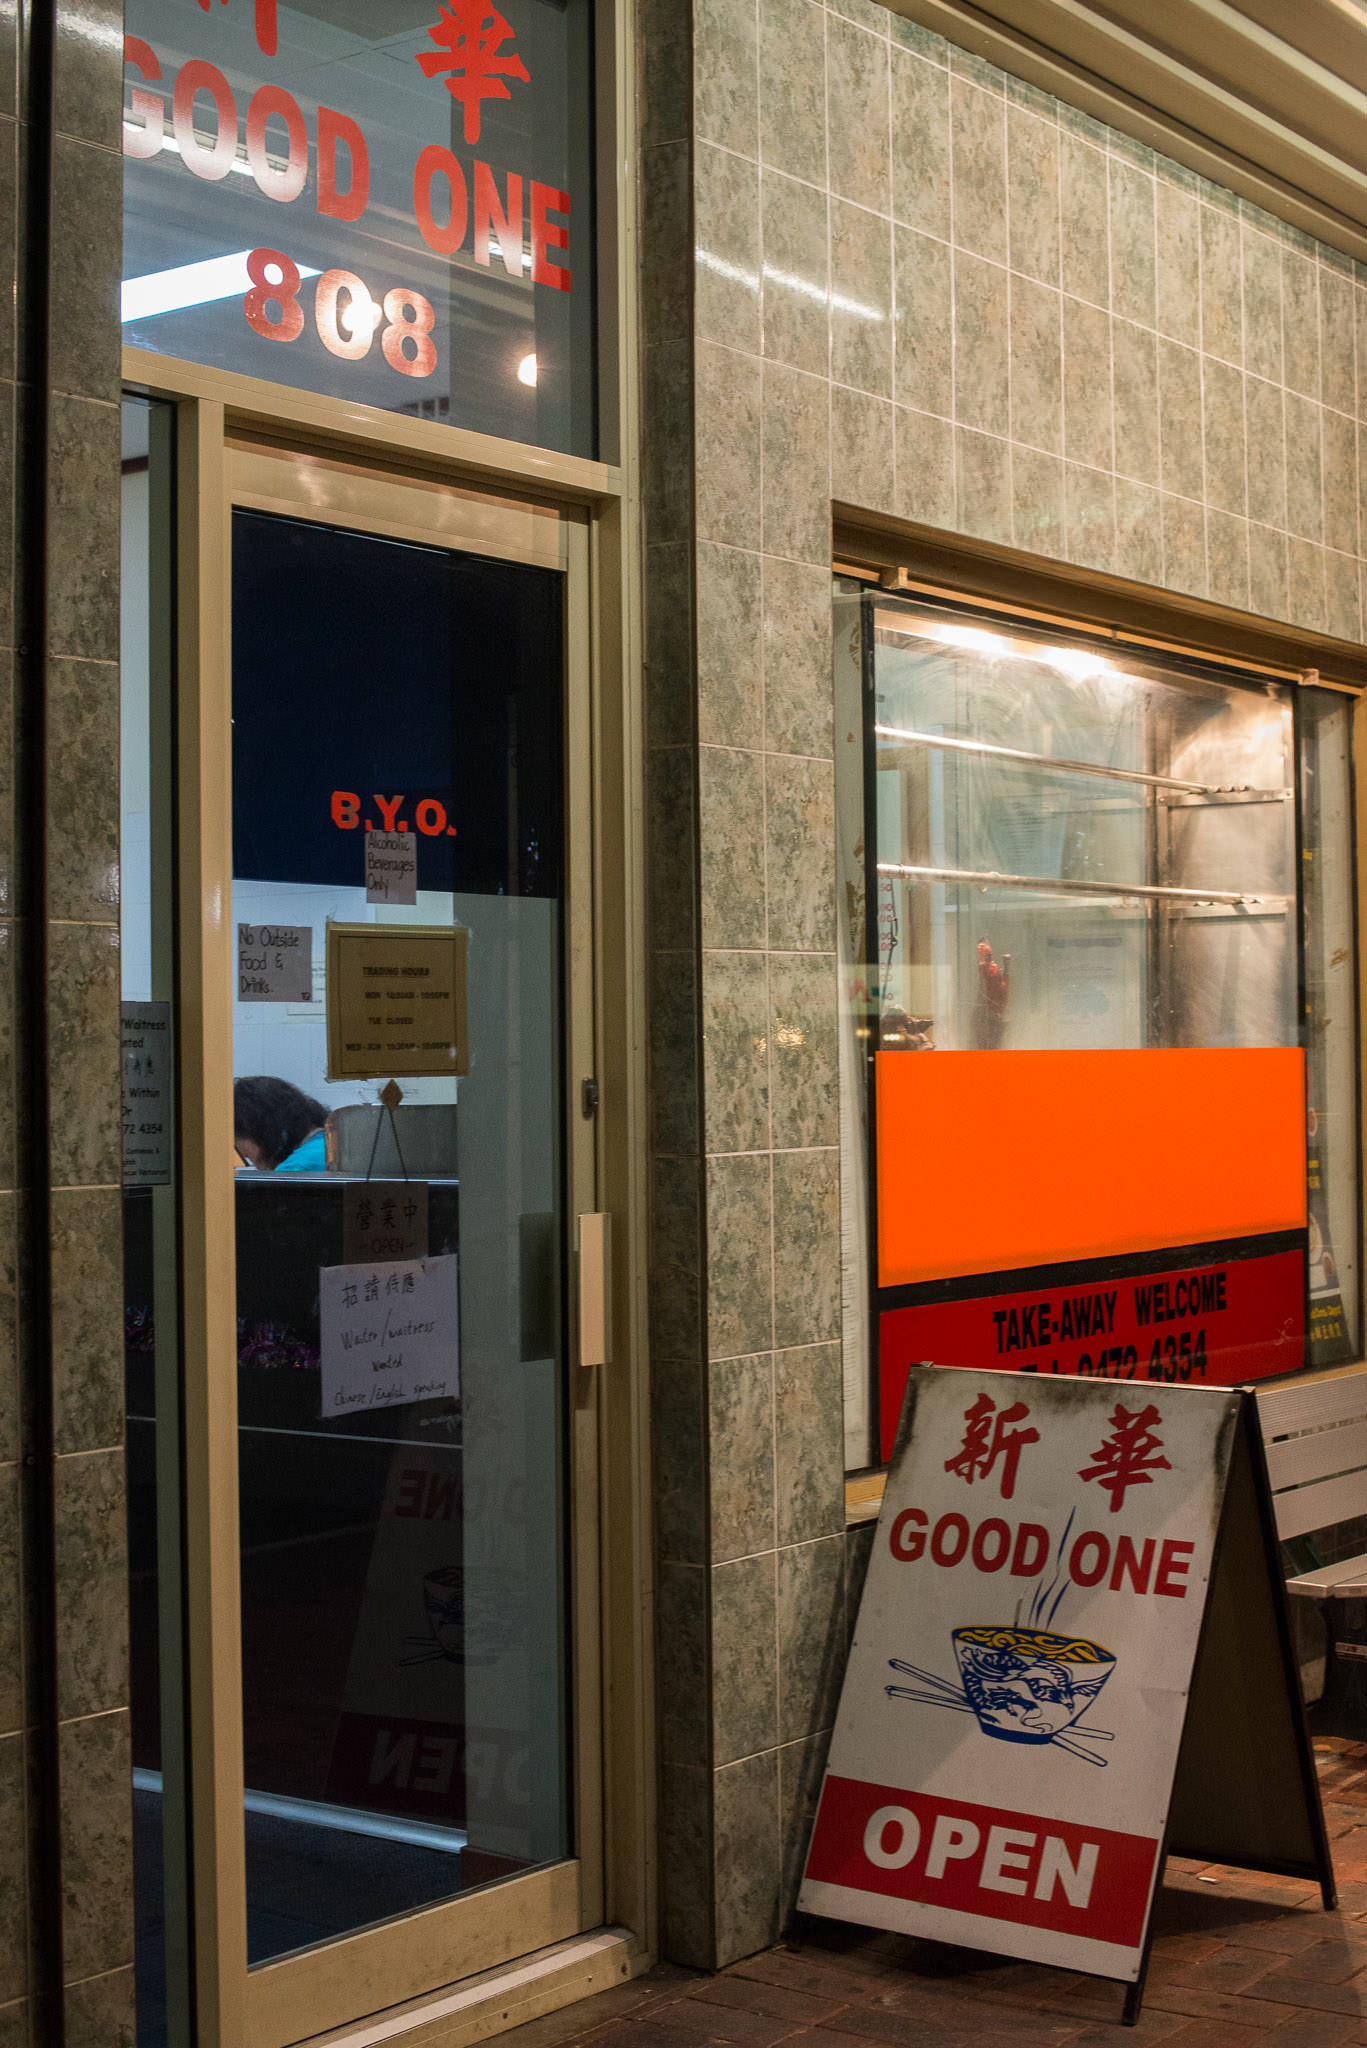 Good One BBQ Chinese Restaurant - entrance